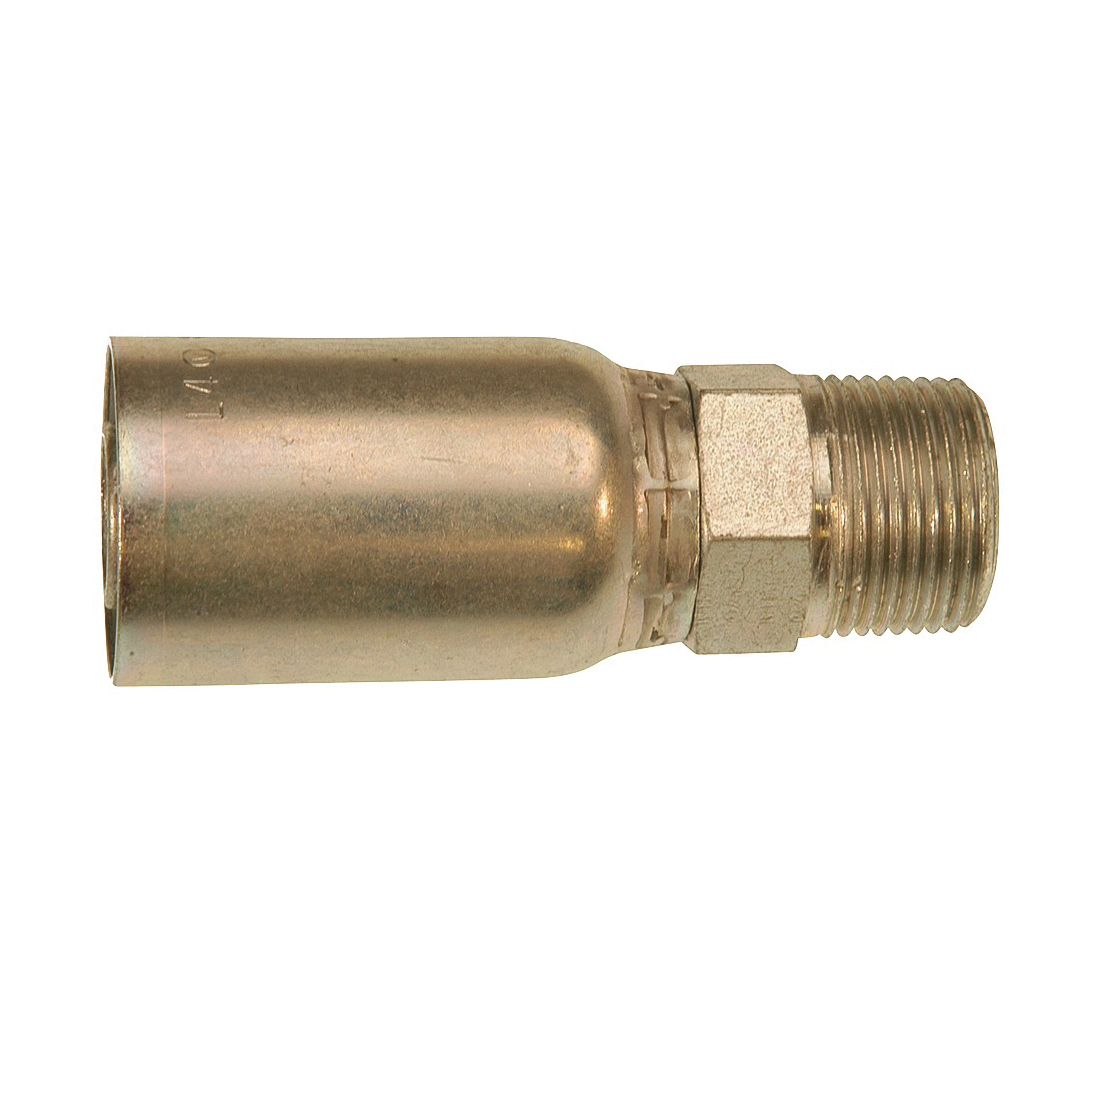 Picture of GATES MegaCrimp G25100-0402 Hose Coupling, 1/8-27, Crimp x NPTF, Straight Angle, Steel, Zinc